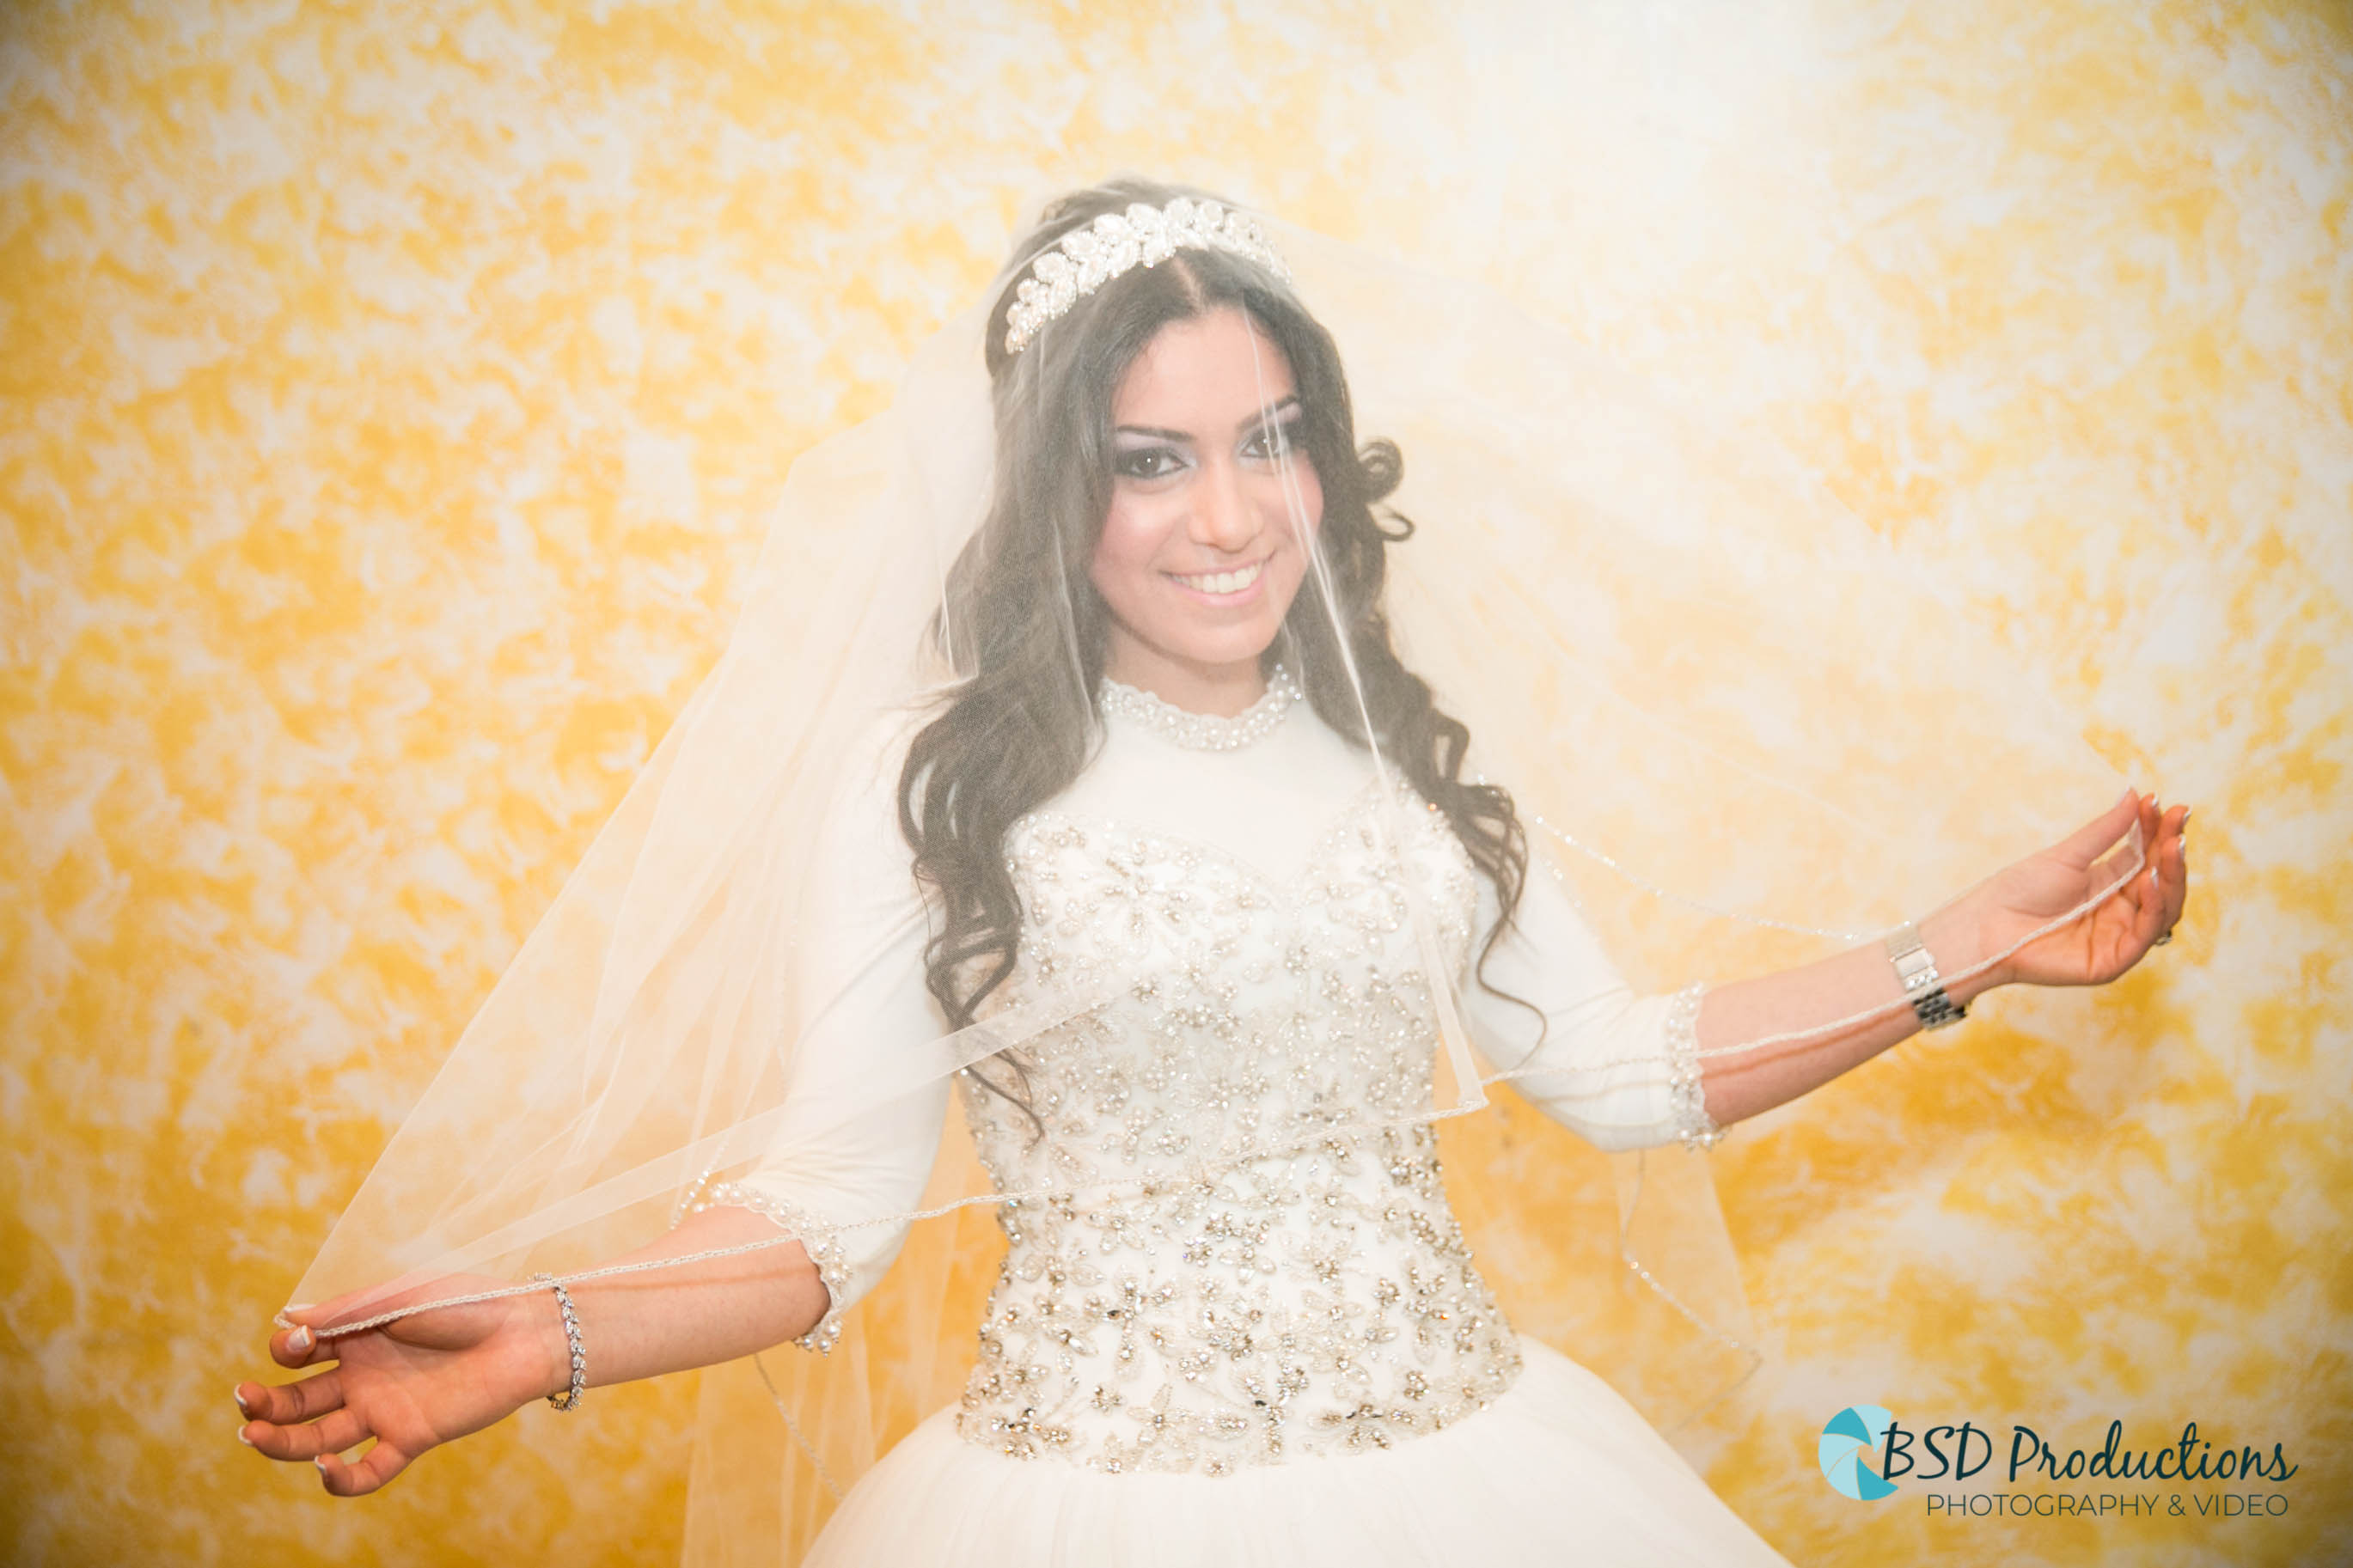 UH5A8557 Wedding – BSD Productions Photography